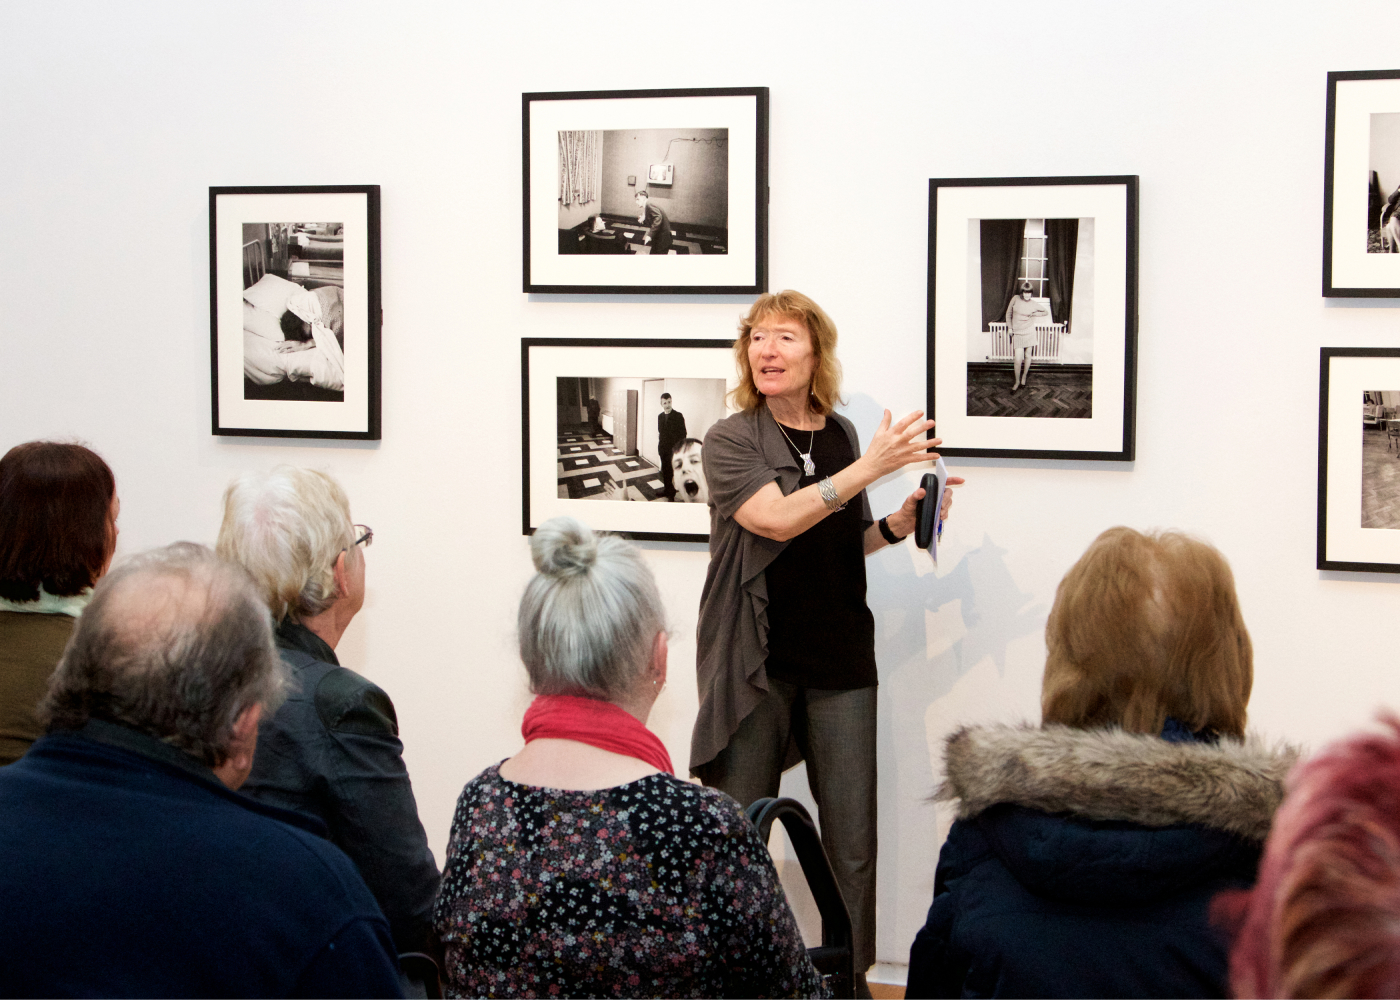 Anne Hornsby audio describing photographs by Martin Parr at an exhibition at Manchester Art Gallery to a group from Henshaws